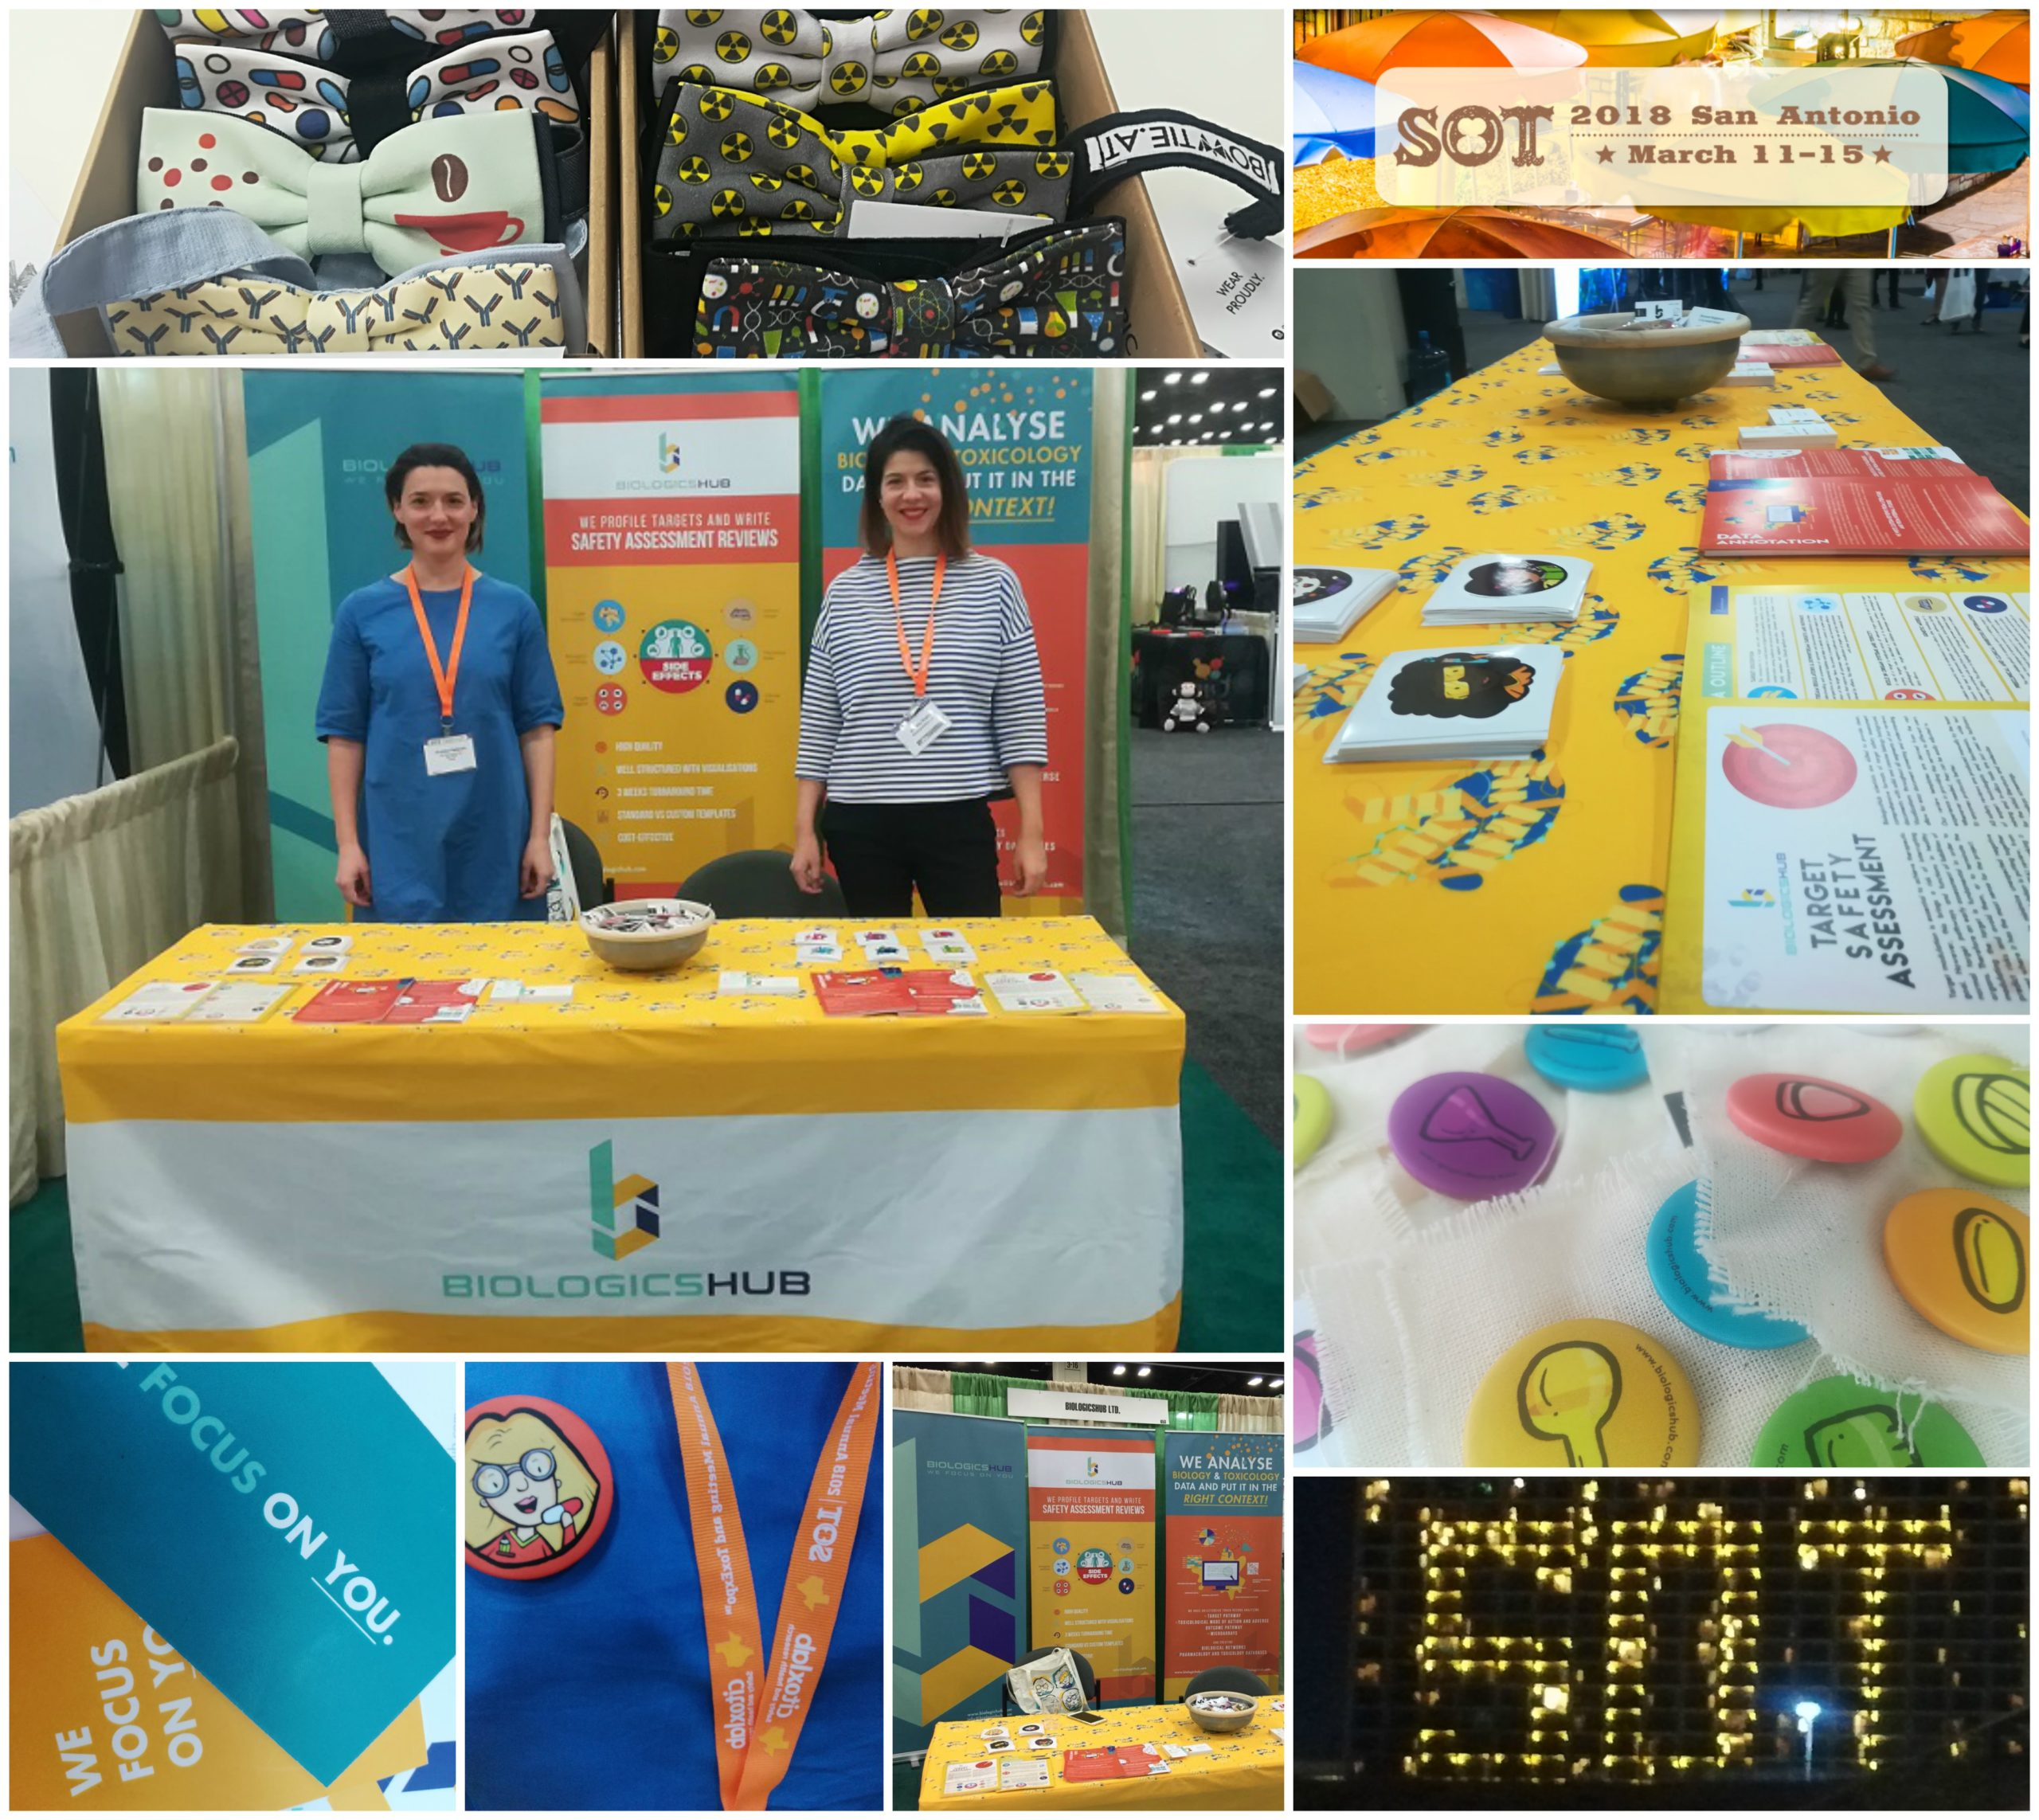 BiologicsHub Science Shaped And Shaded In Lots Of Colors @ Our First SOT2018 Booth!